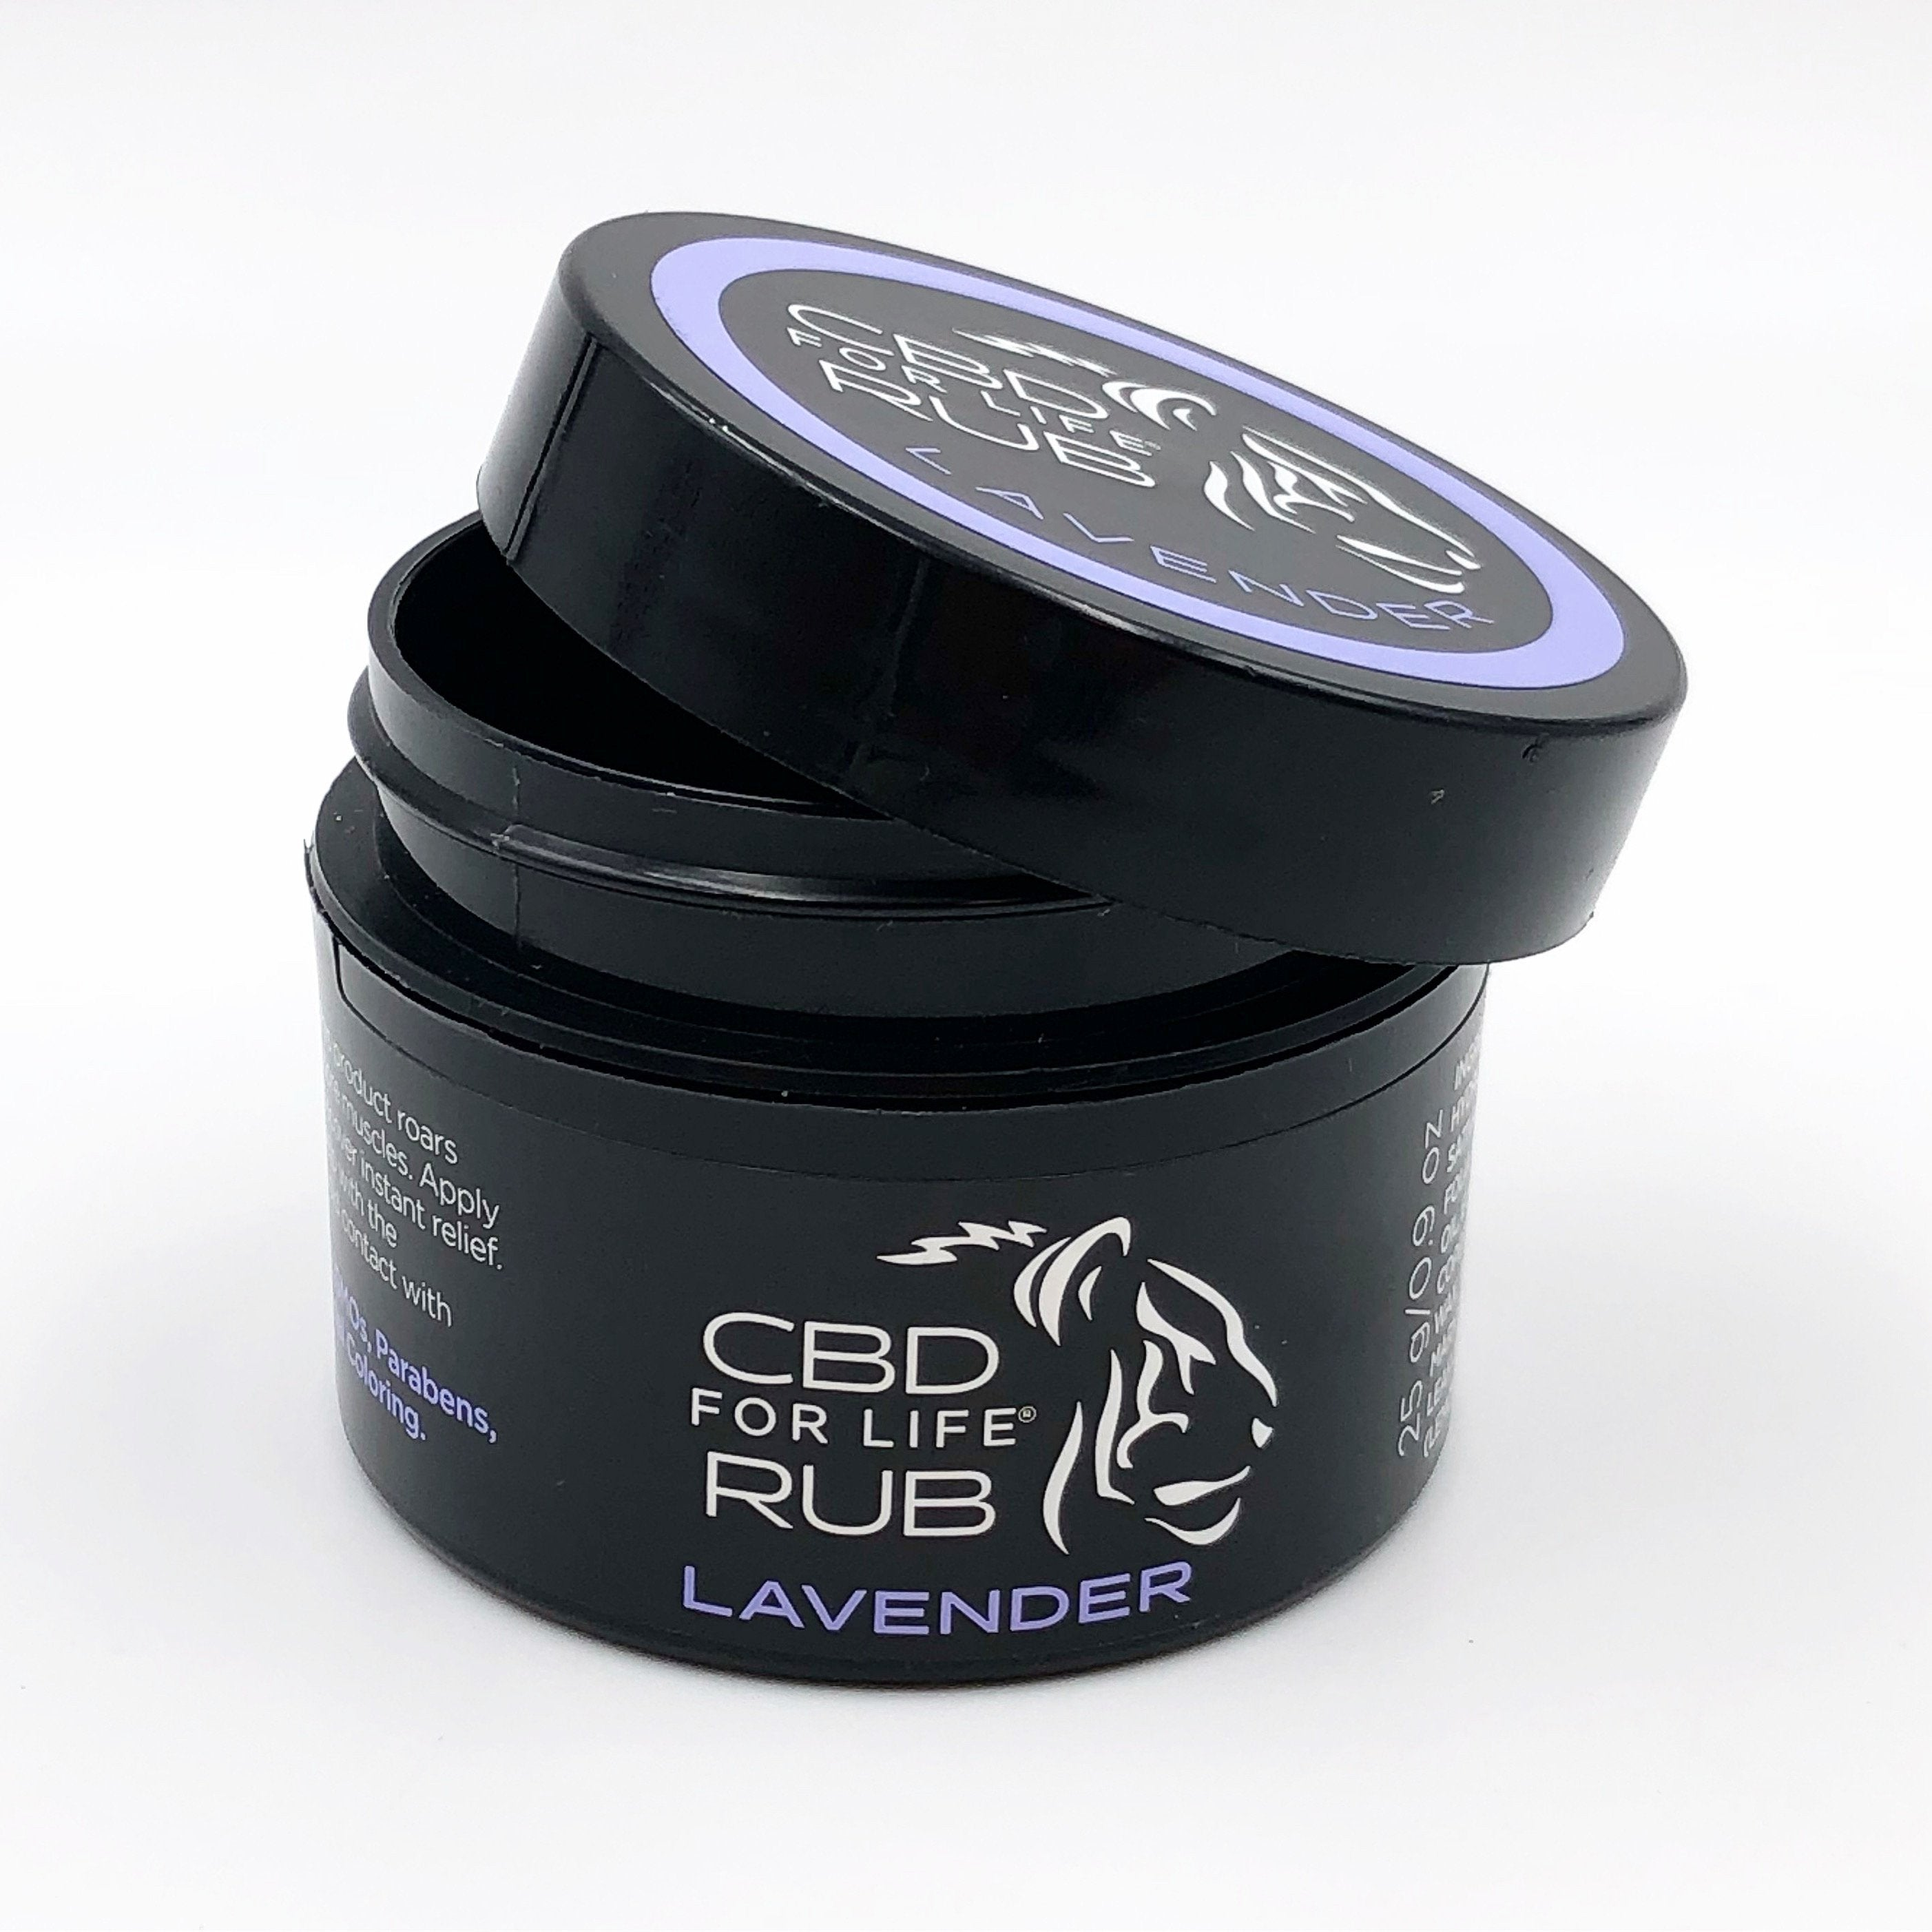 Pure CBD For Life Rub – Lavender